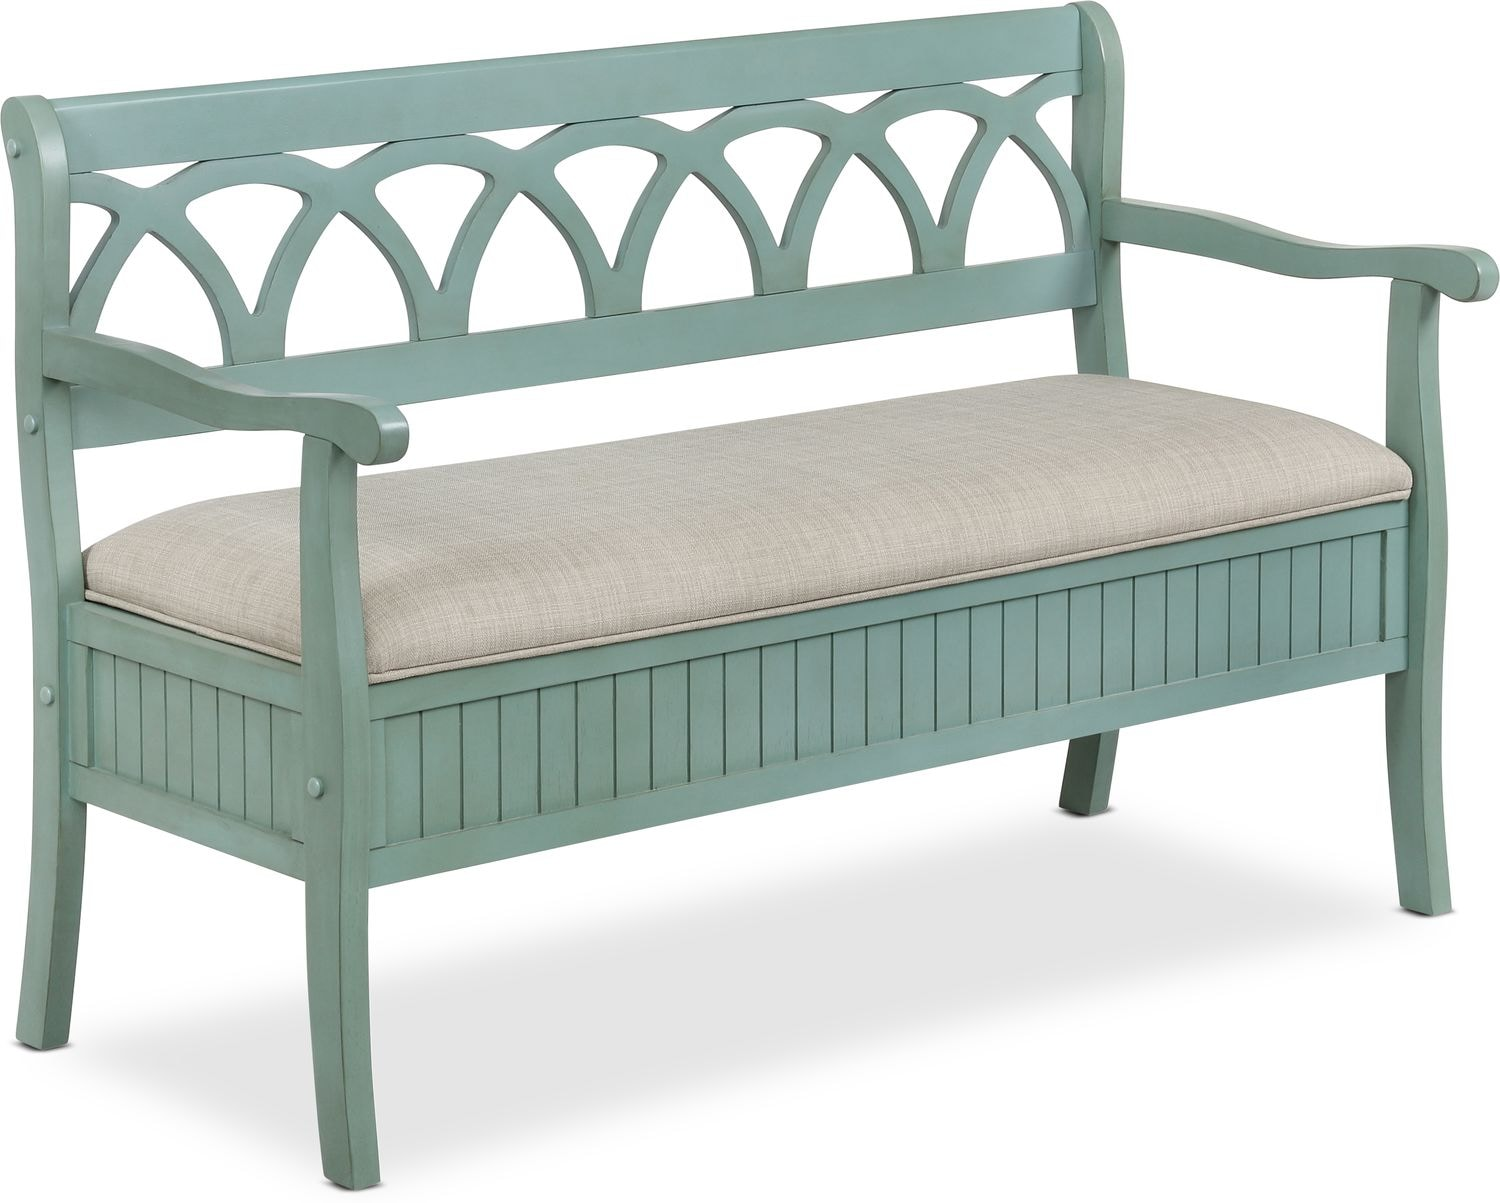 Hall_Entrance Furniture - Quincy Storage Bench